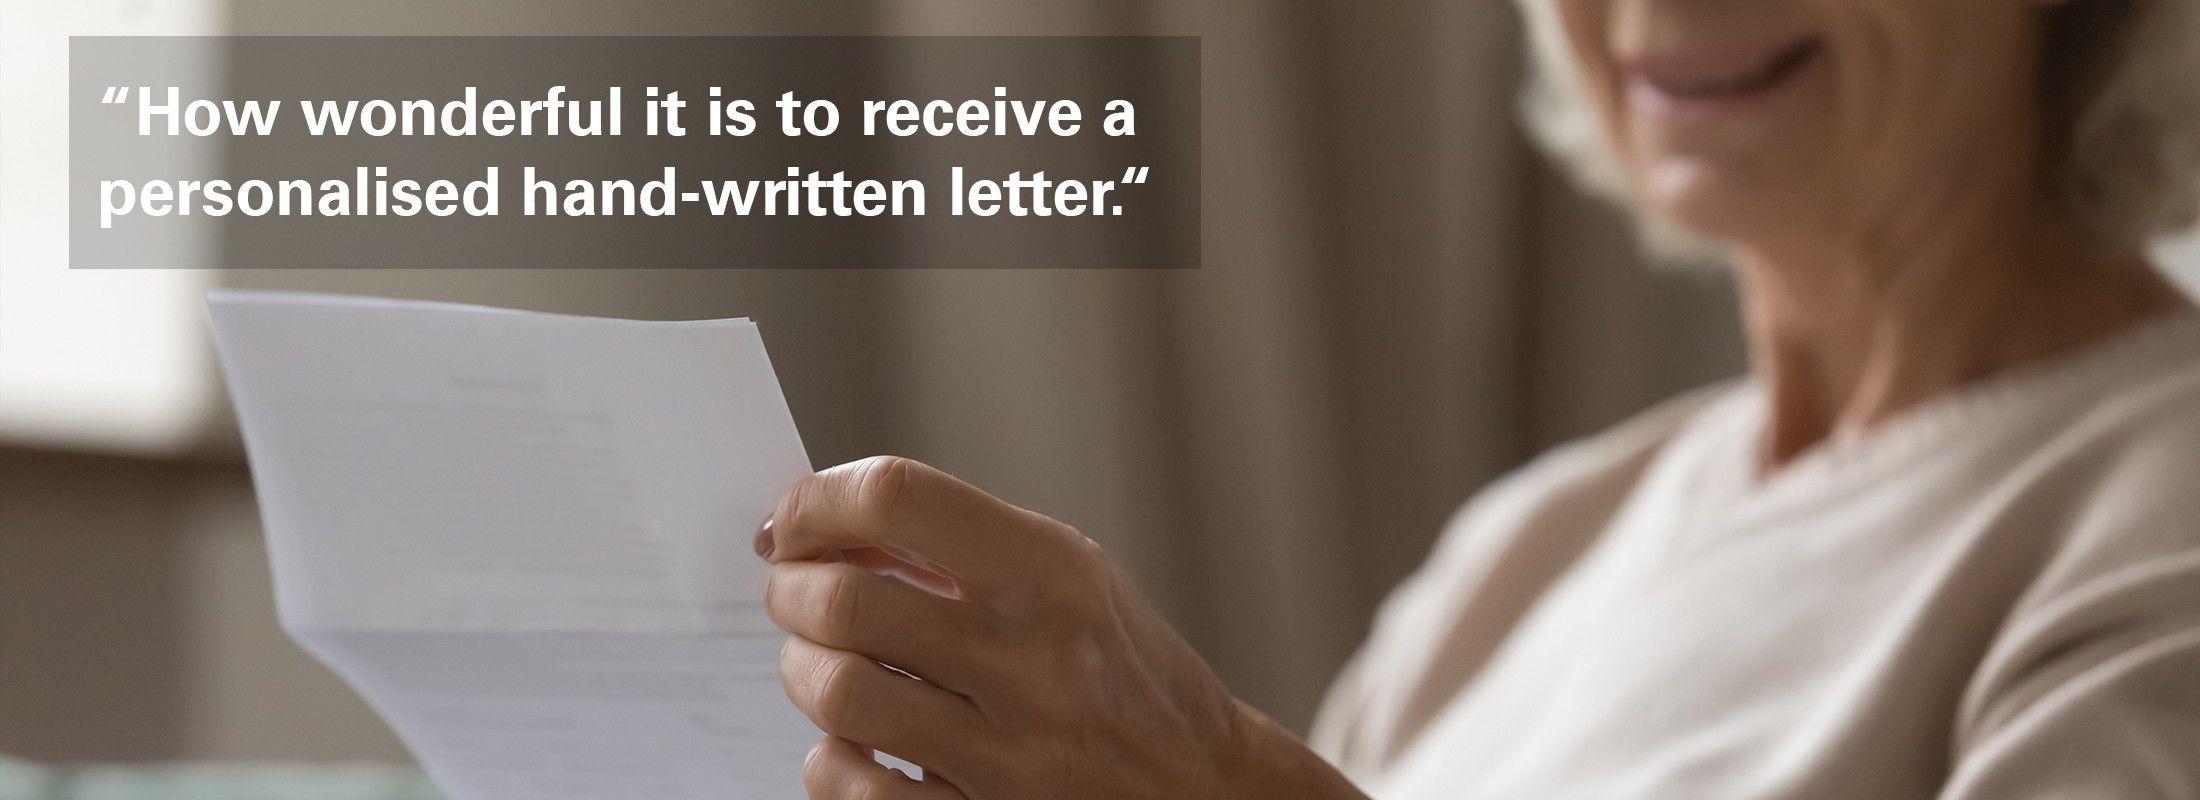 Lady reading a handwritten letter